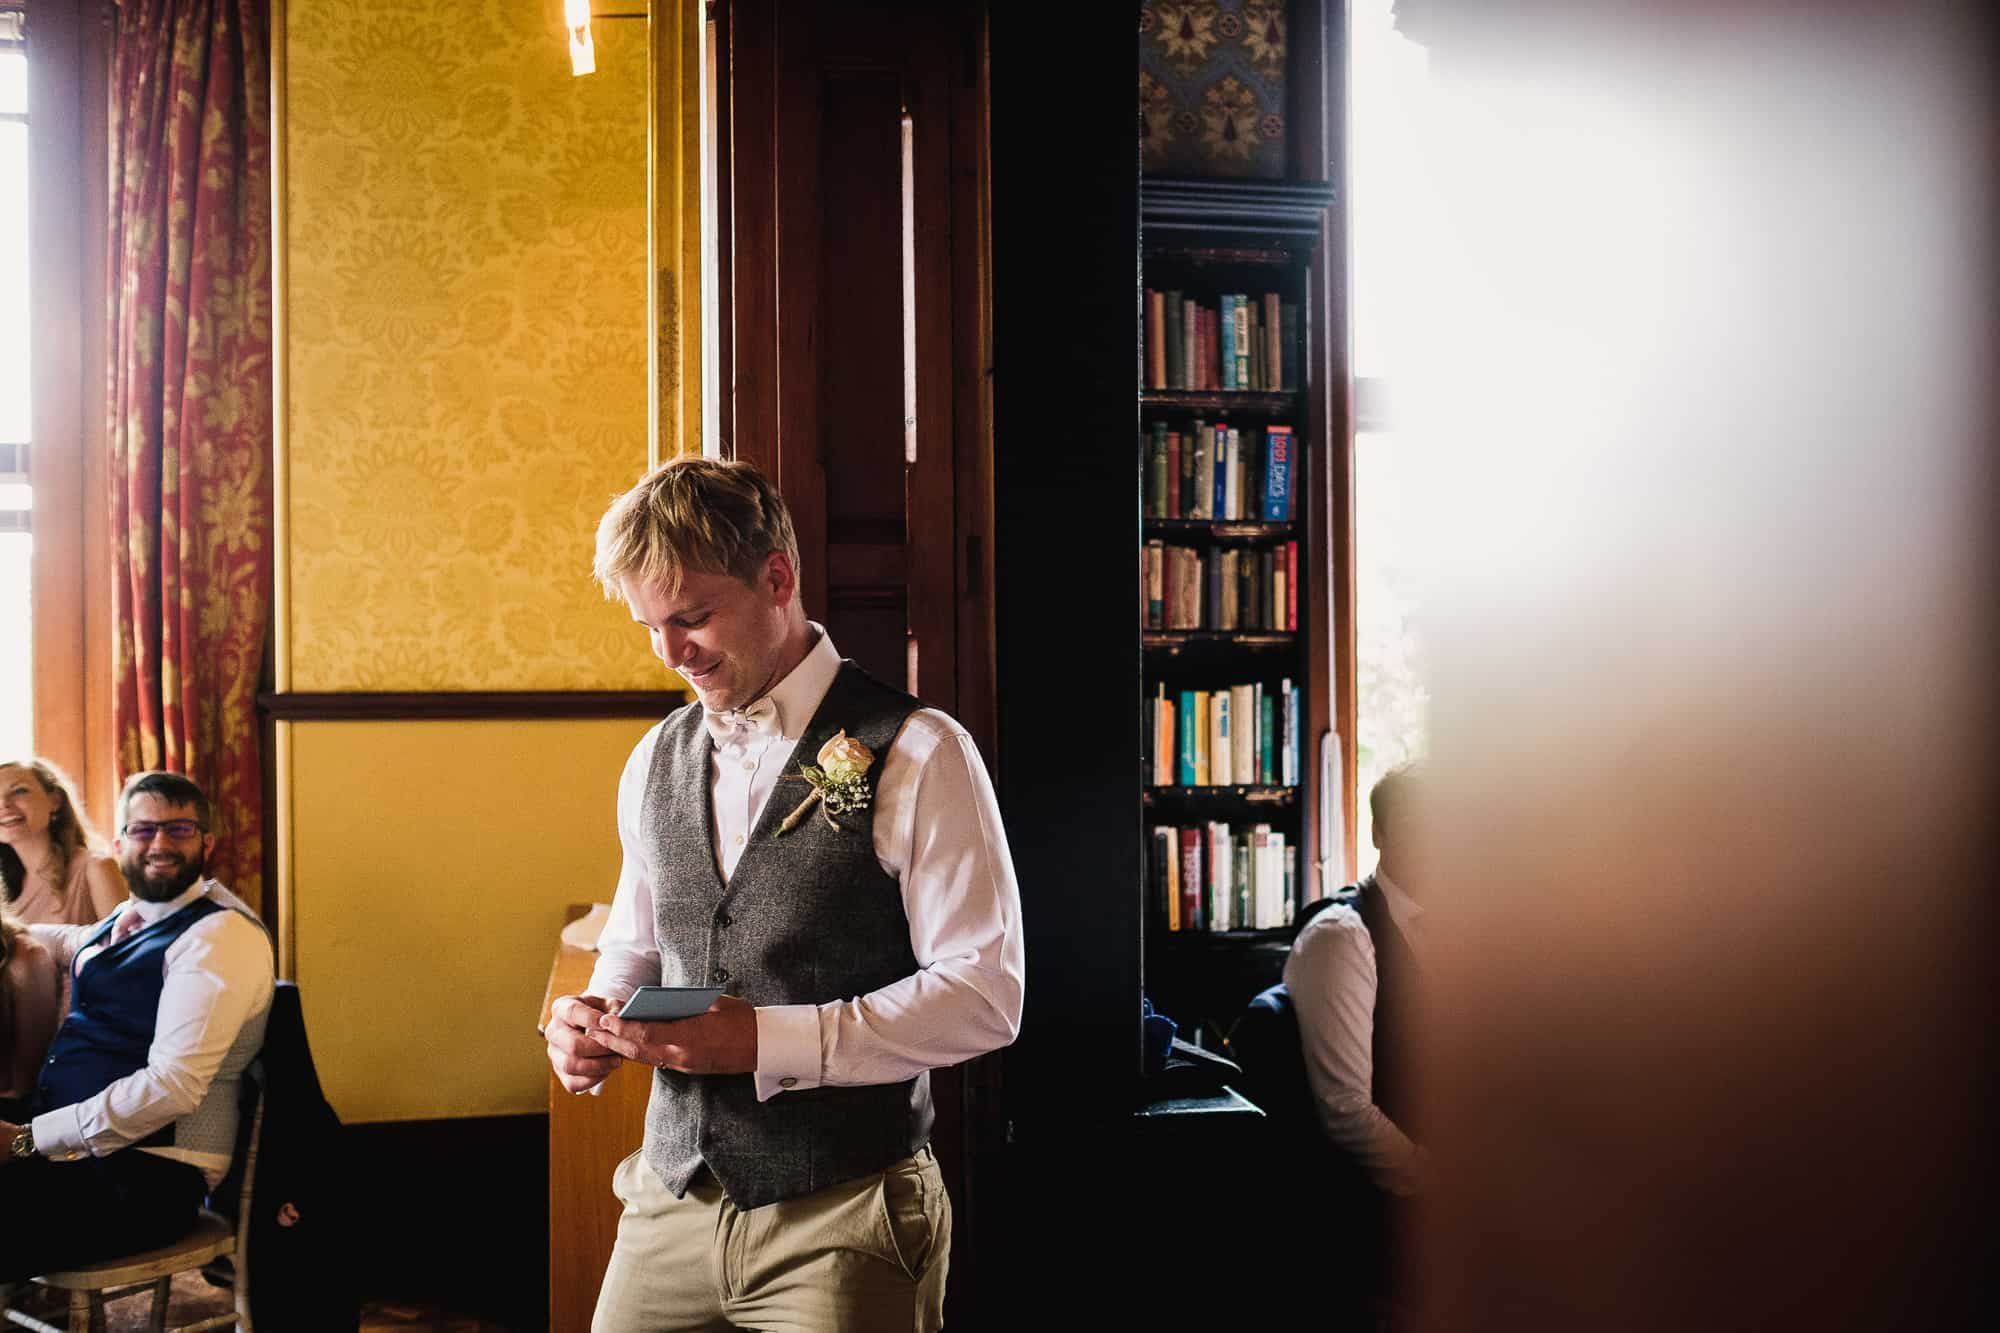 huntsham-court-wedding-photography-matt-tyler-0056